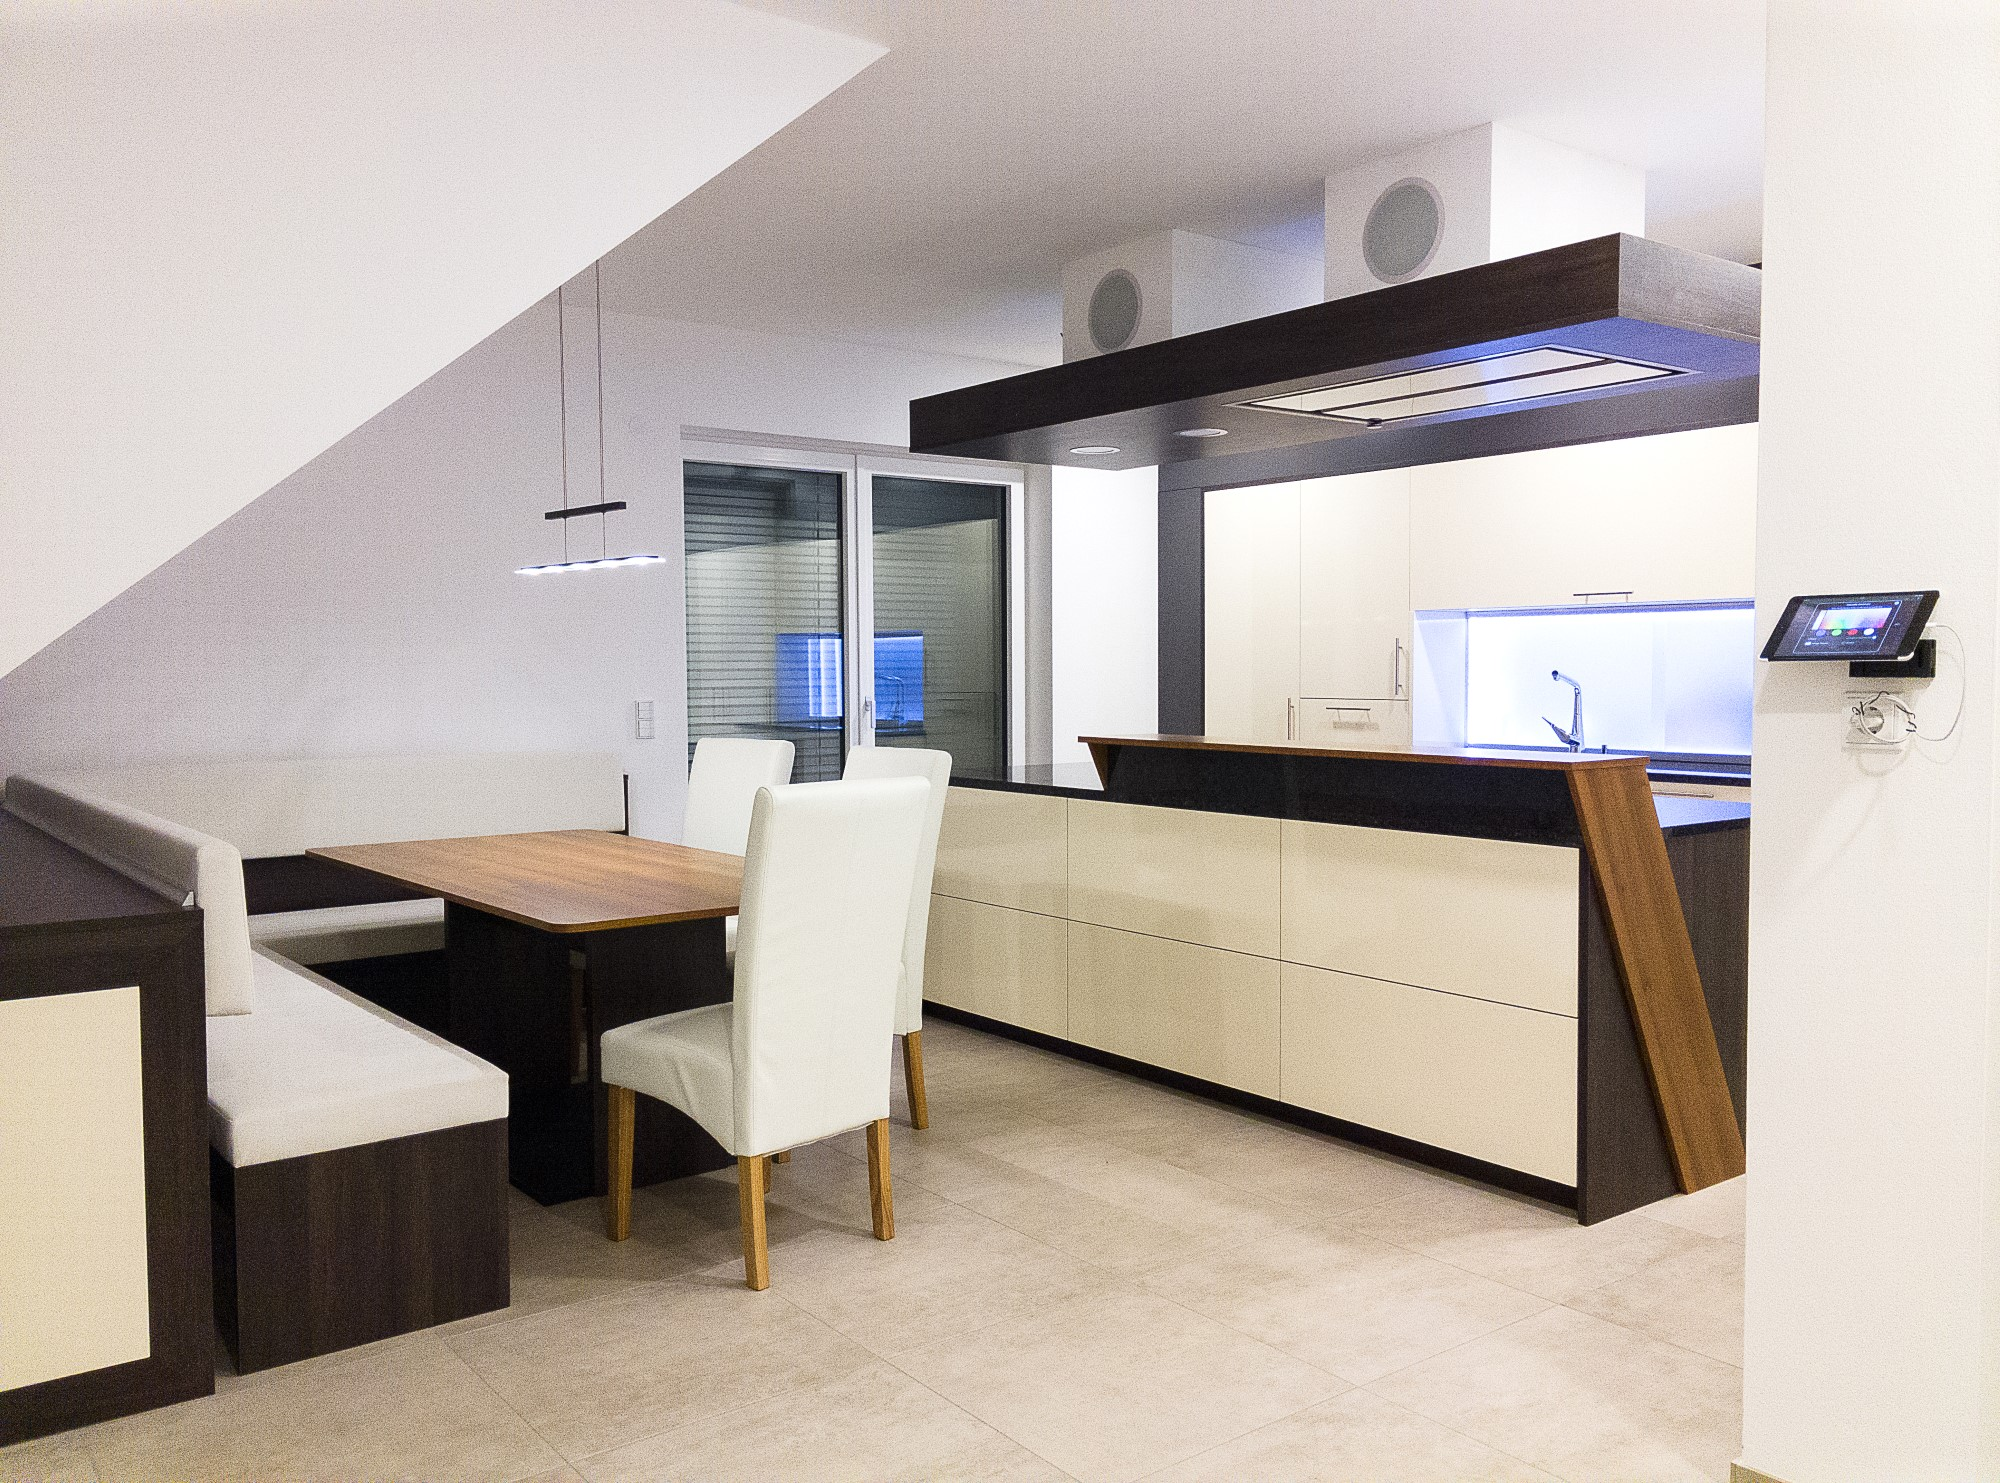 Cubic Kitchen design (2)